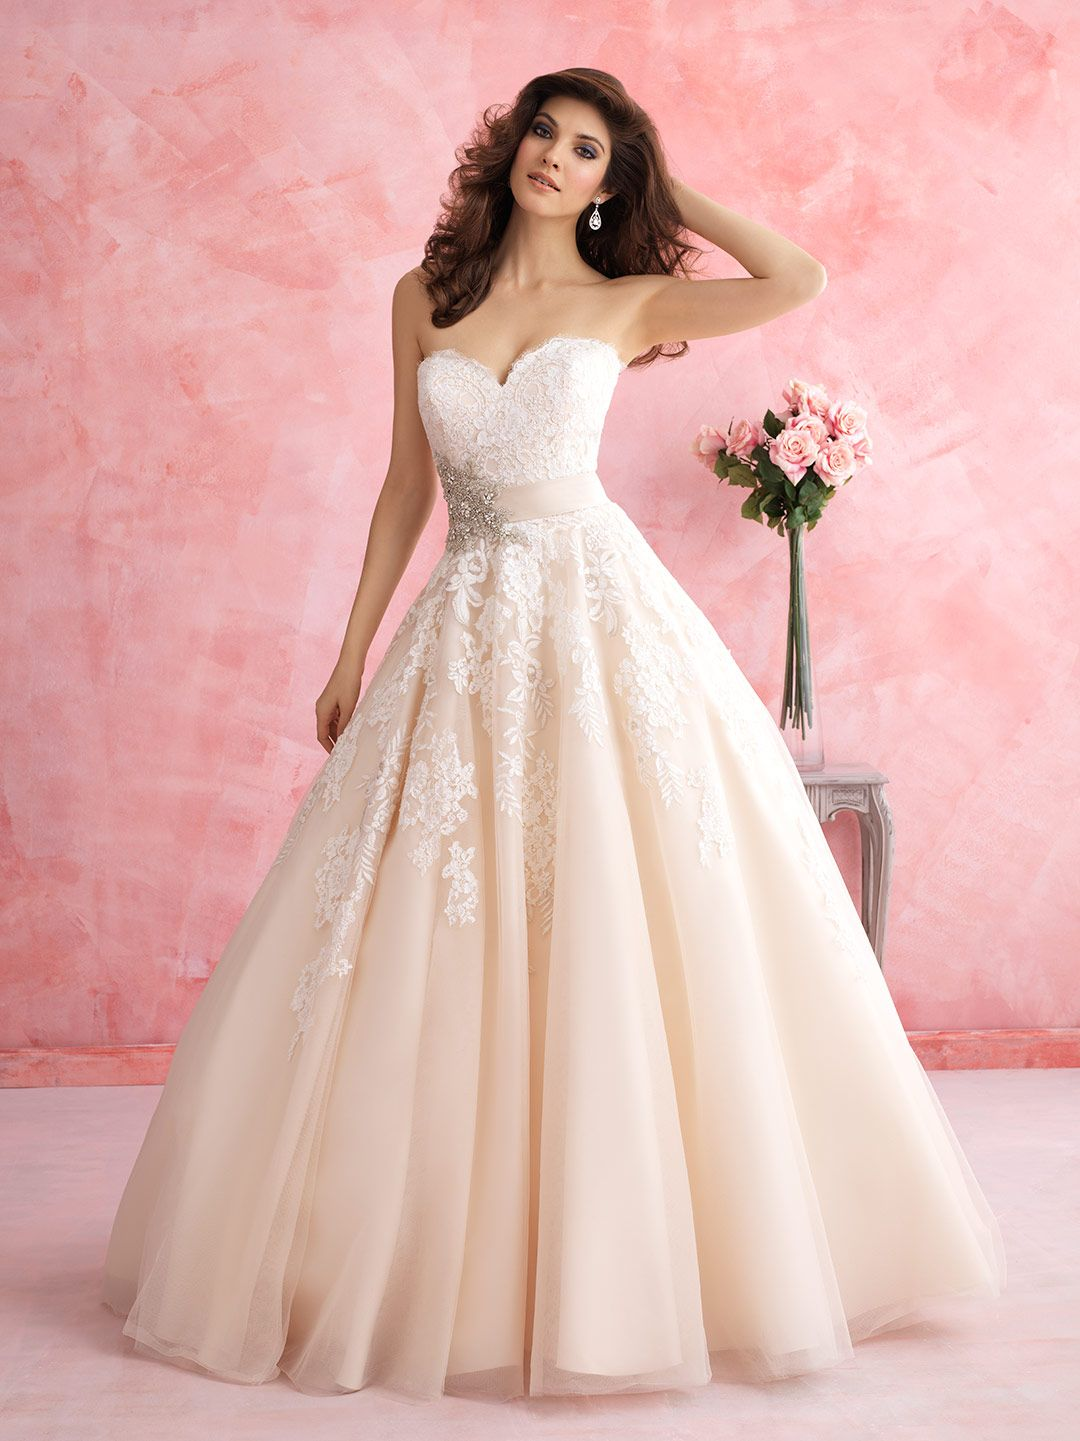 This strapless ballgown by Allure Bridals is beyond pretty ...